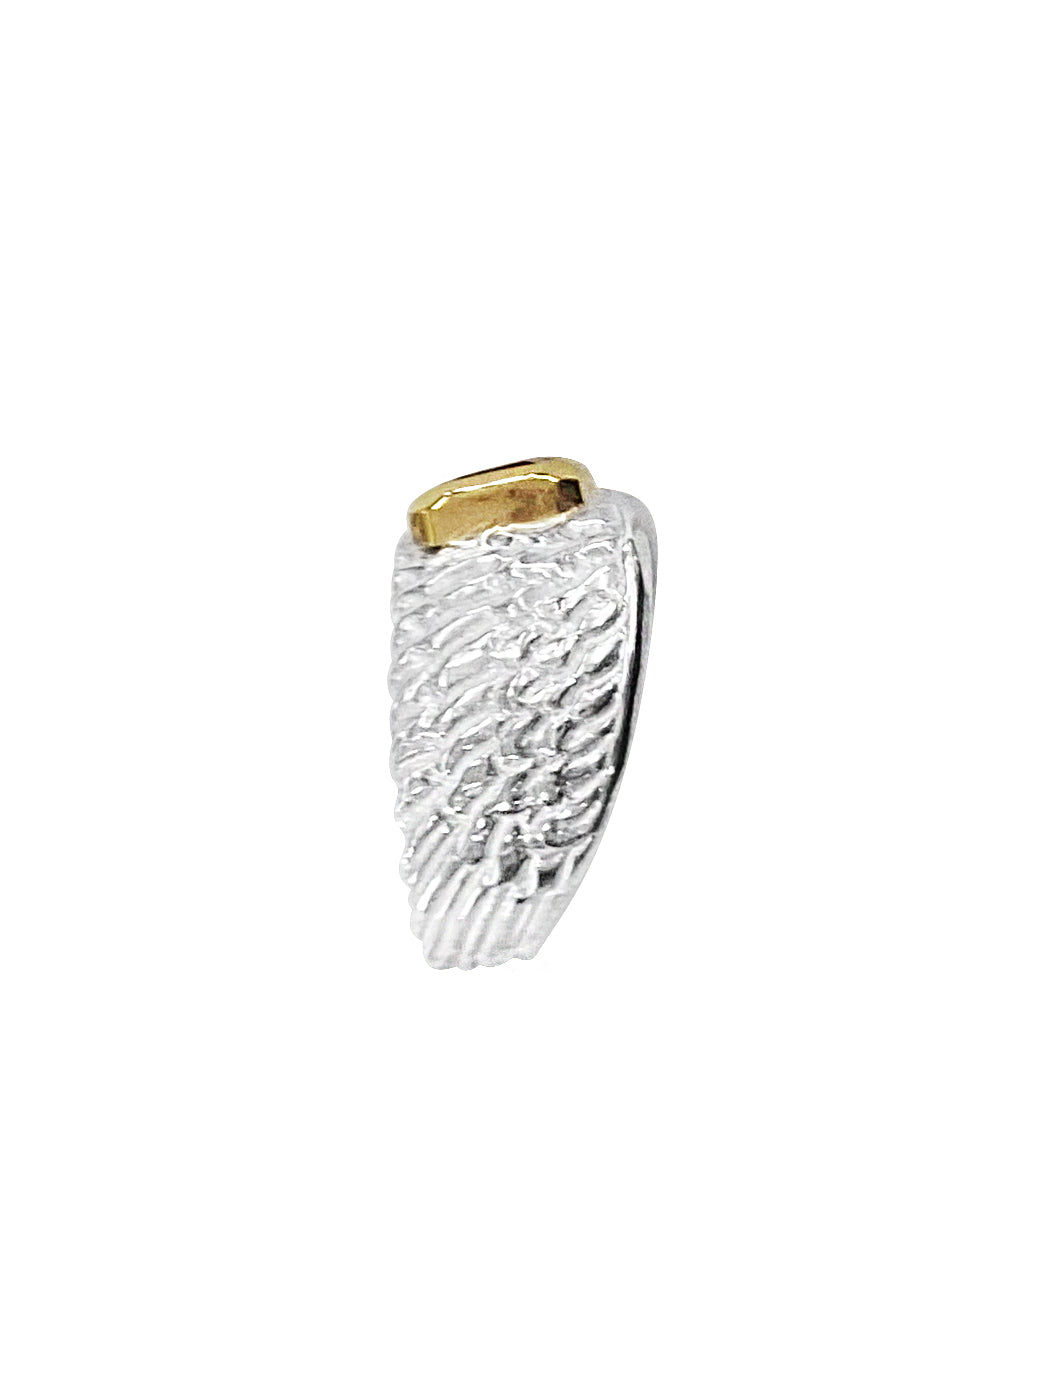 Fiorina Jewellery Reuben Ring Emerald Shank View